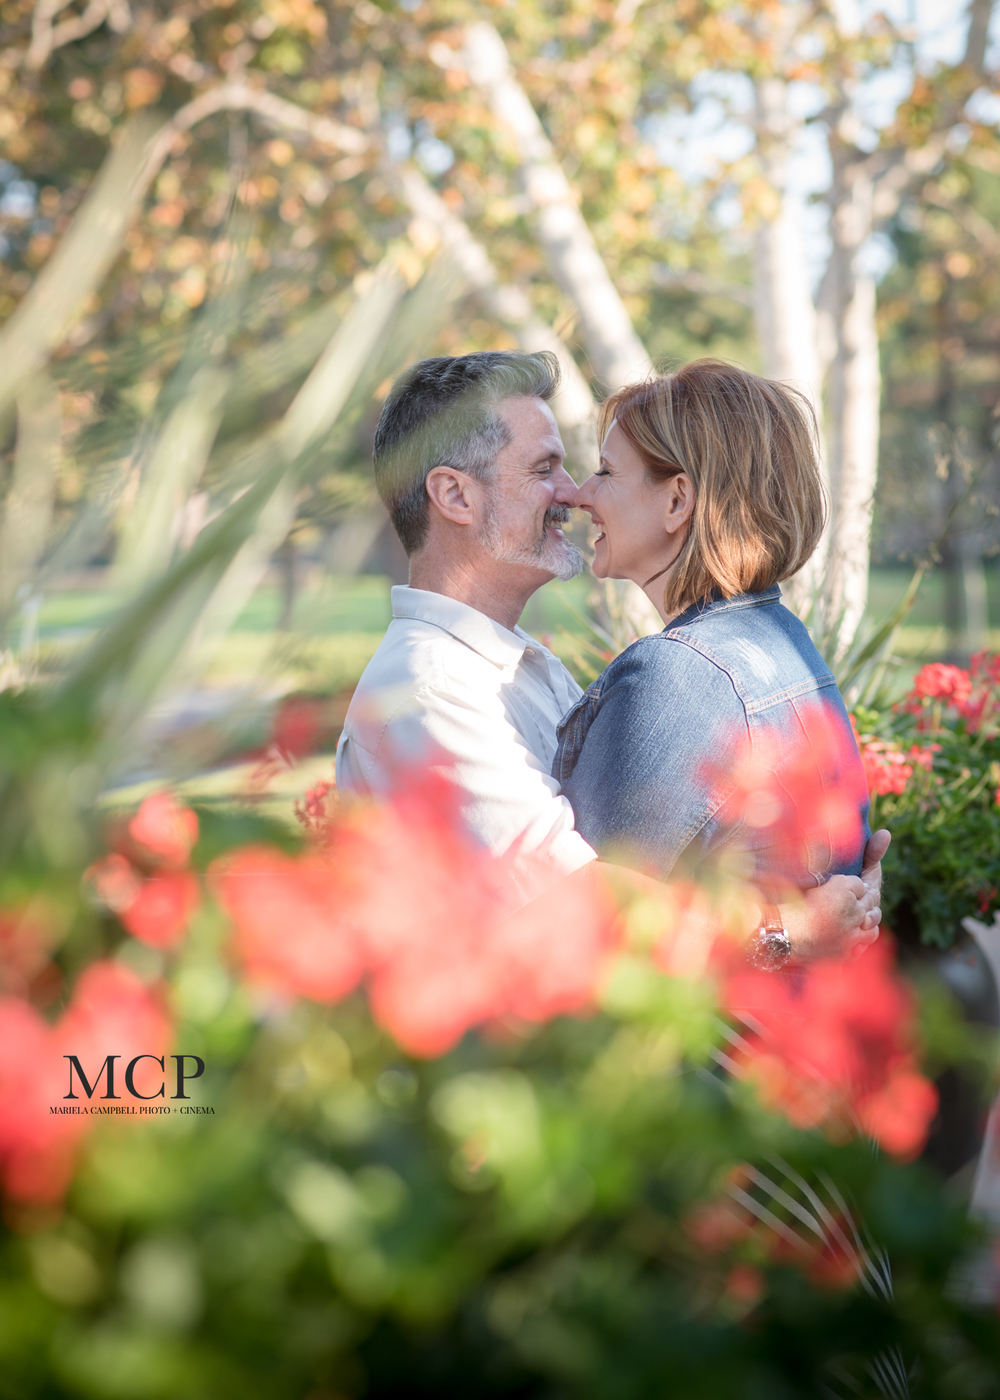 M&T engagment blog. MCP-11.jpg